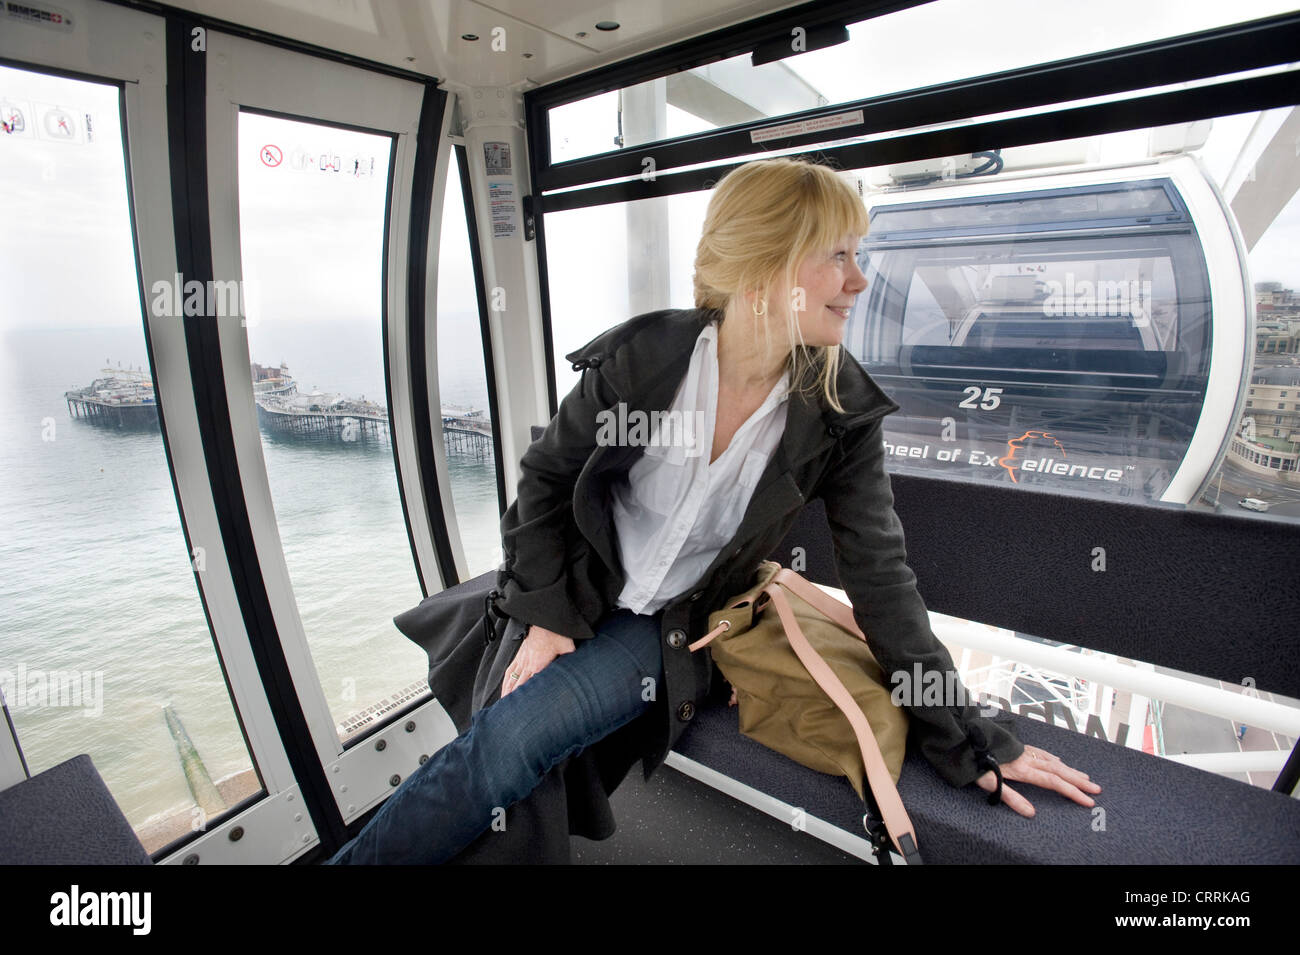 The Brighton Eye Ferris Wheel on Brighton seafront. A woman sightseer in one of the pods overlooking the beach and - Stock Image